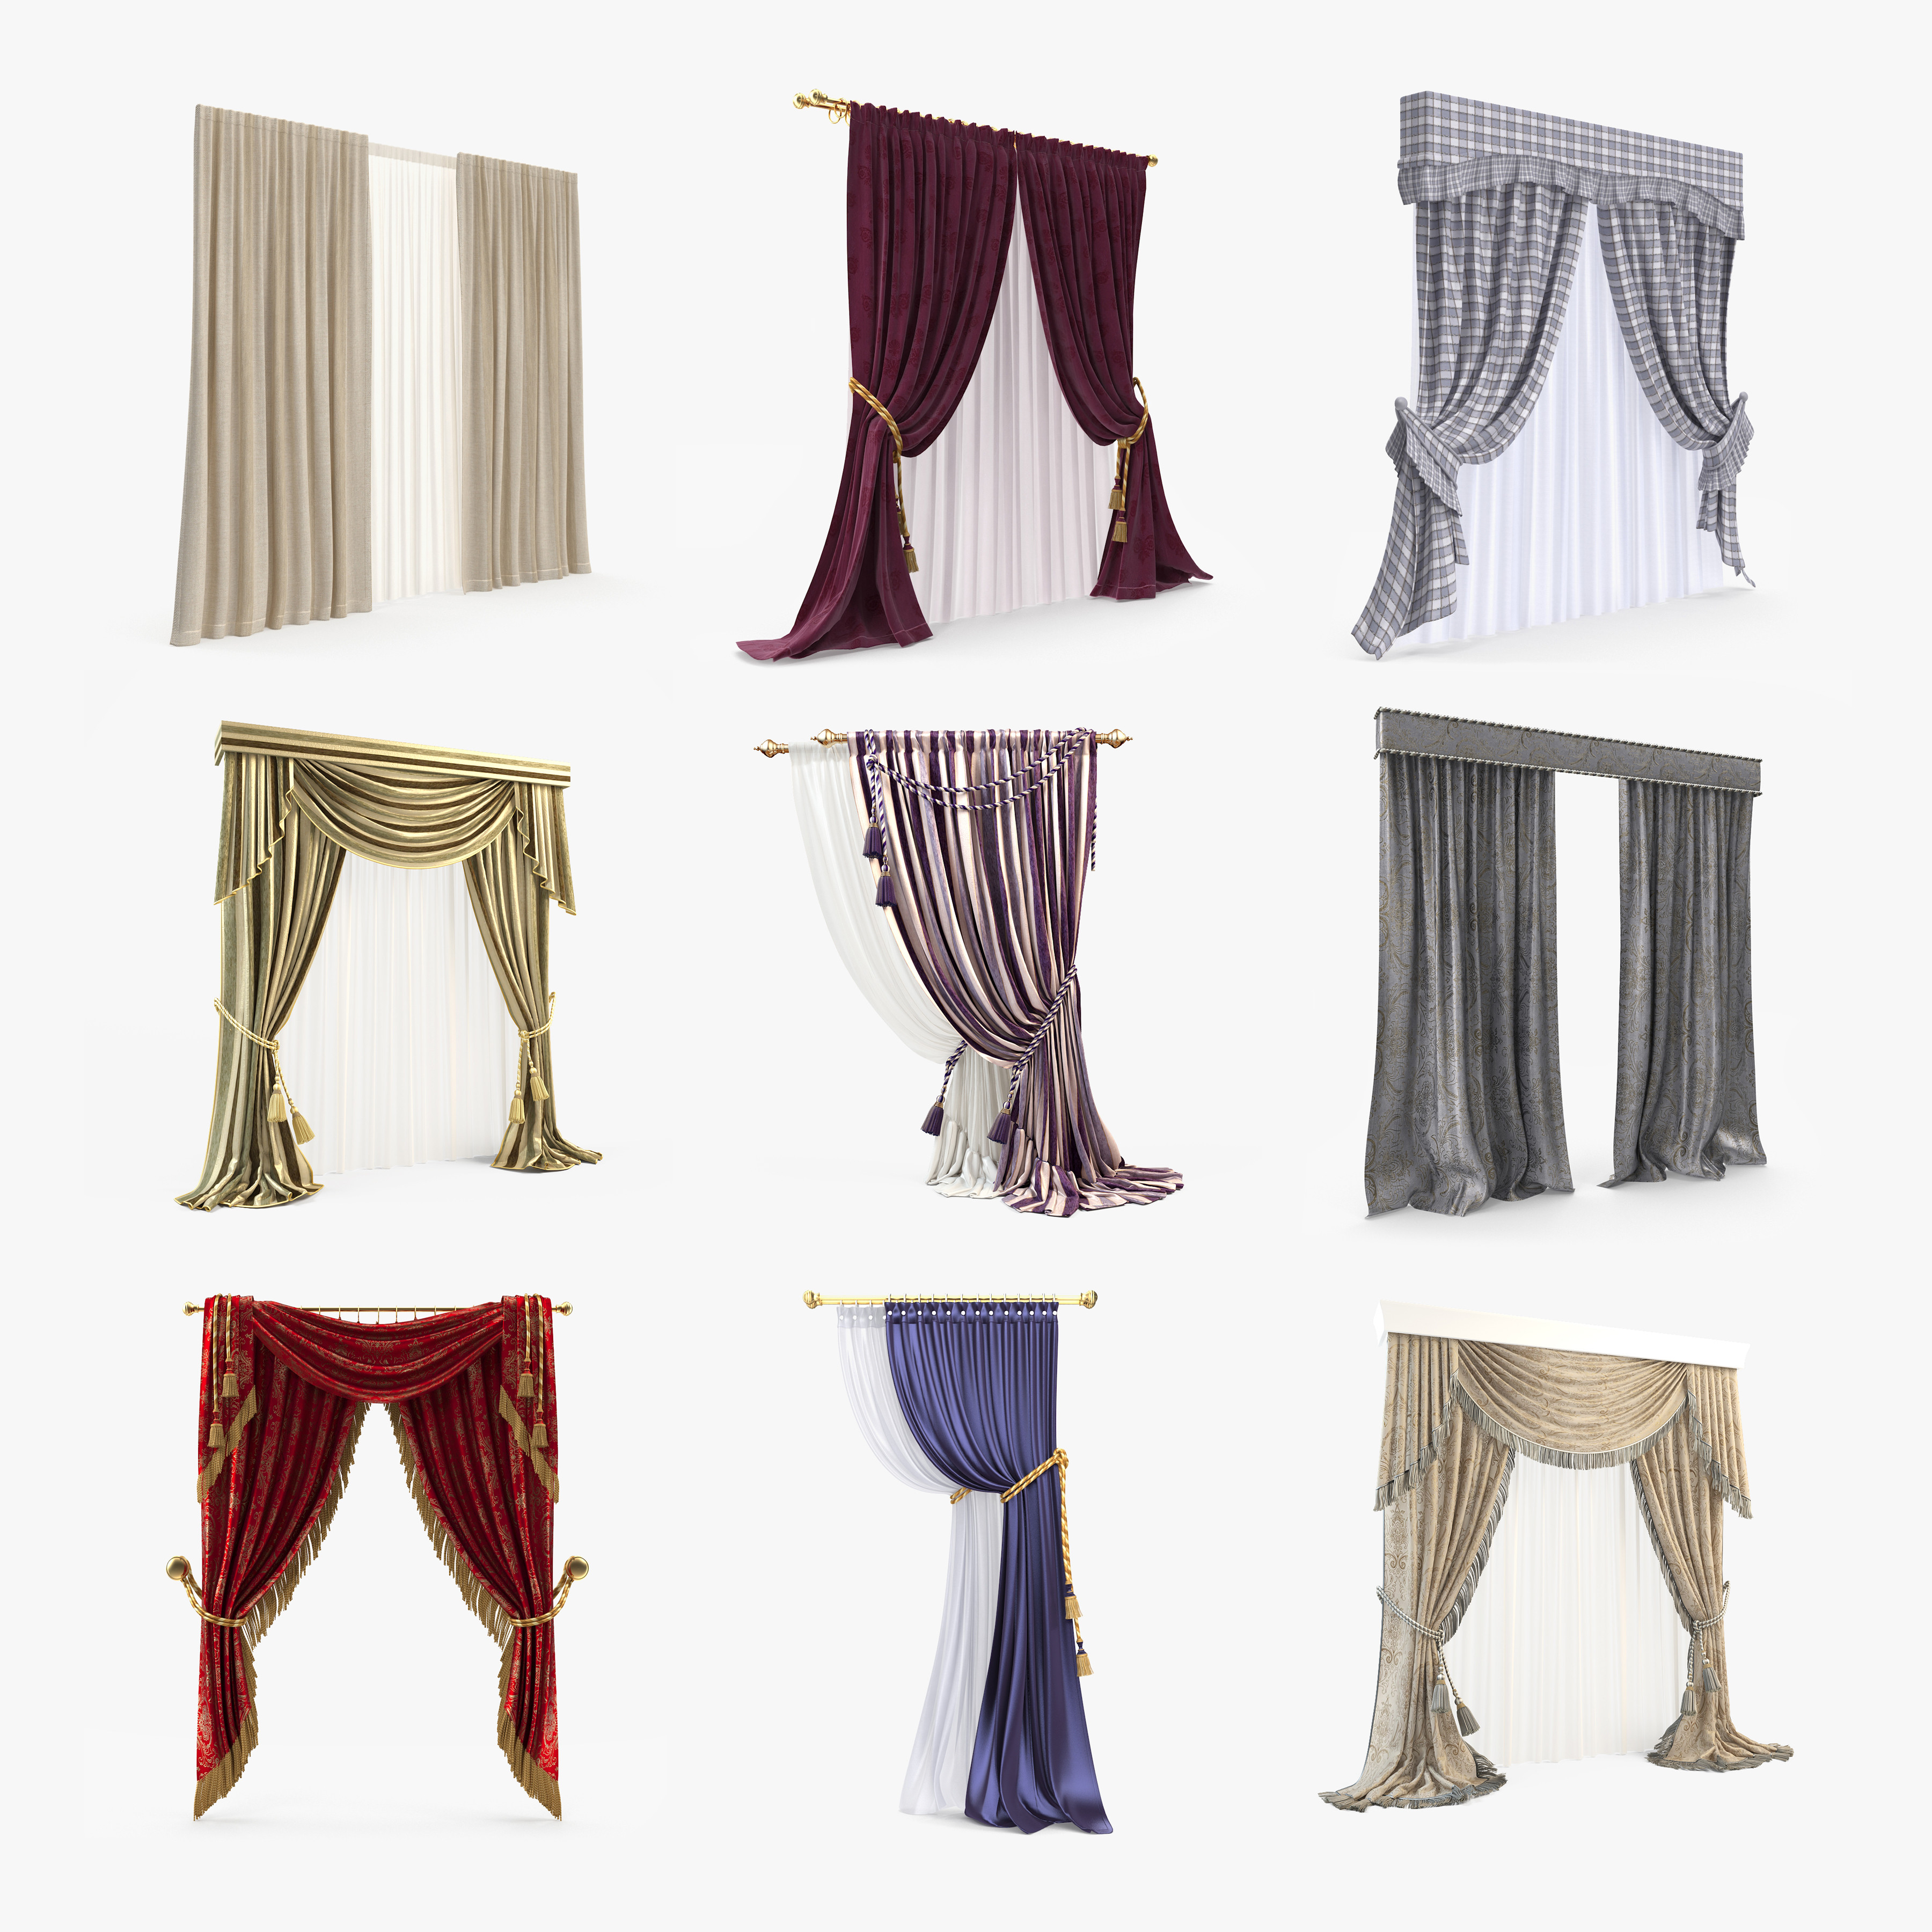 Curtain collection 1.jpg